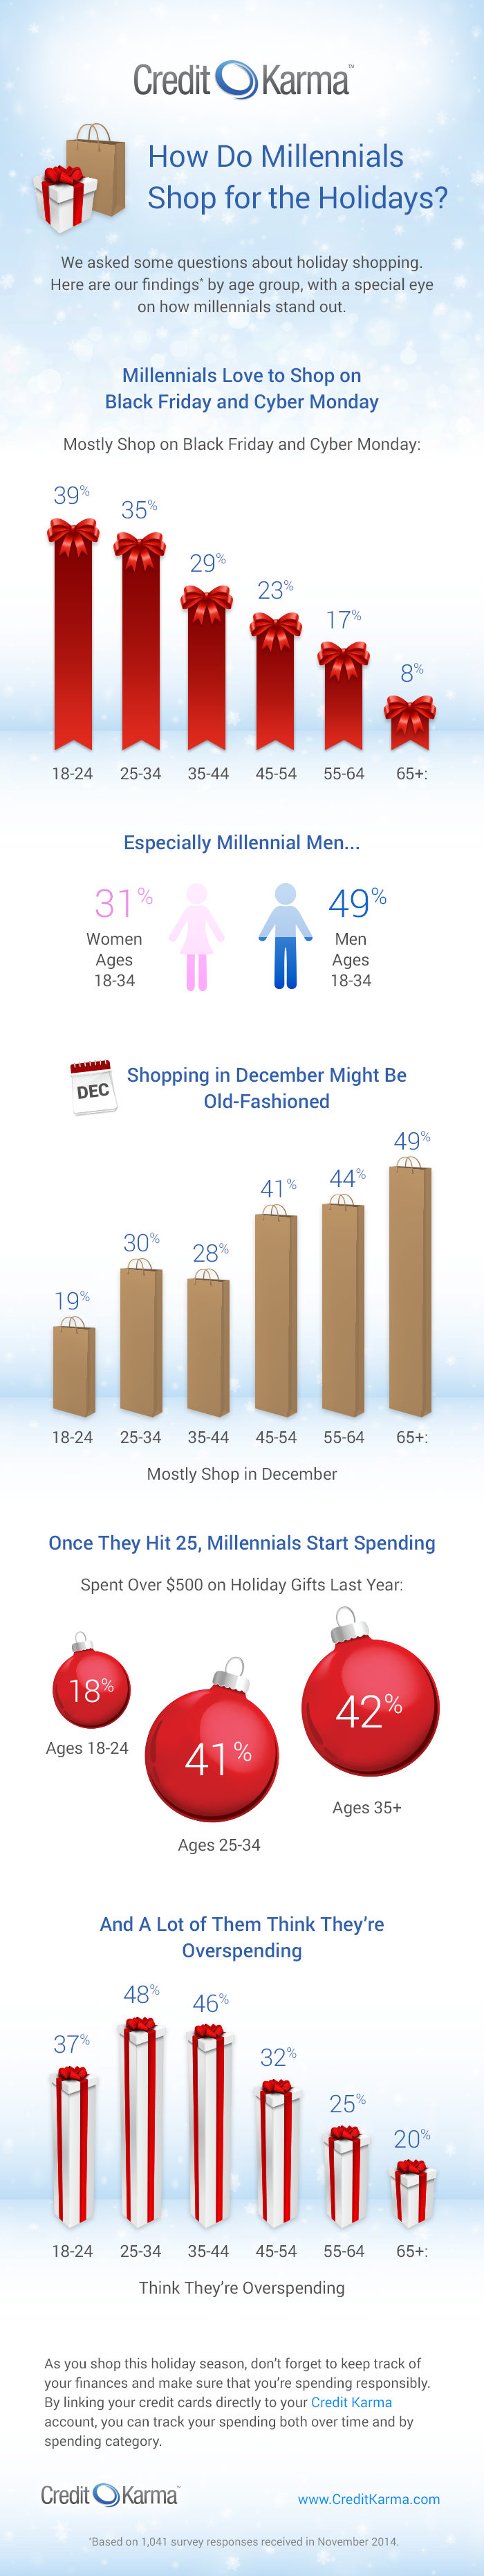 infographic_HolidayShopping